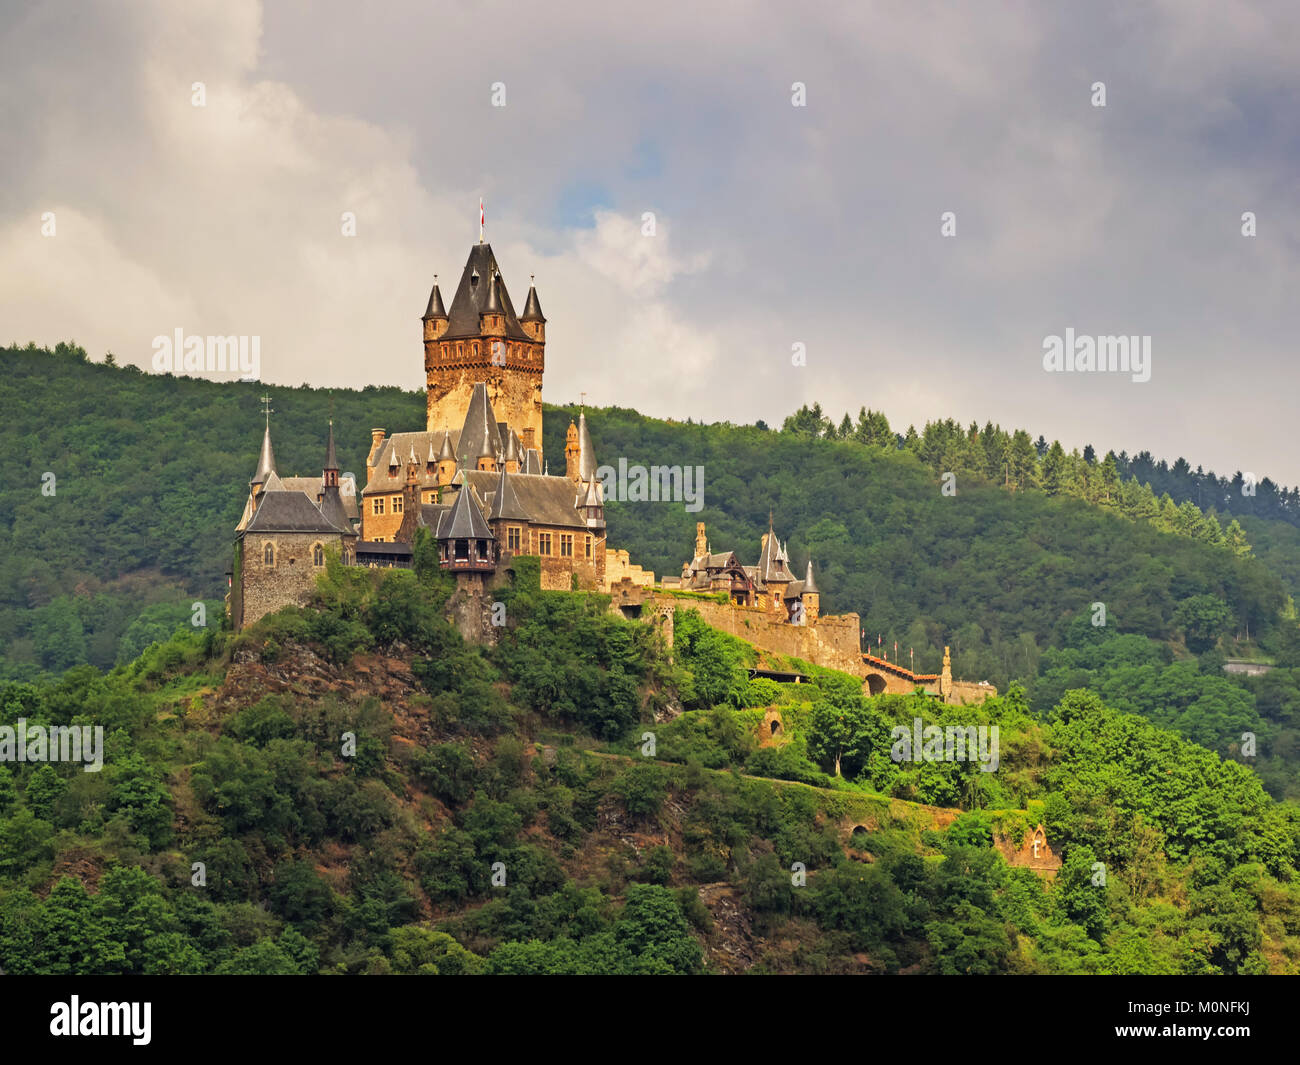 Exterior view of the Castle Reichsburg at Cochem, Germany - Stock Image